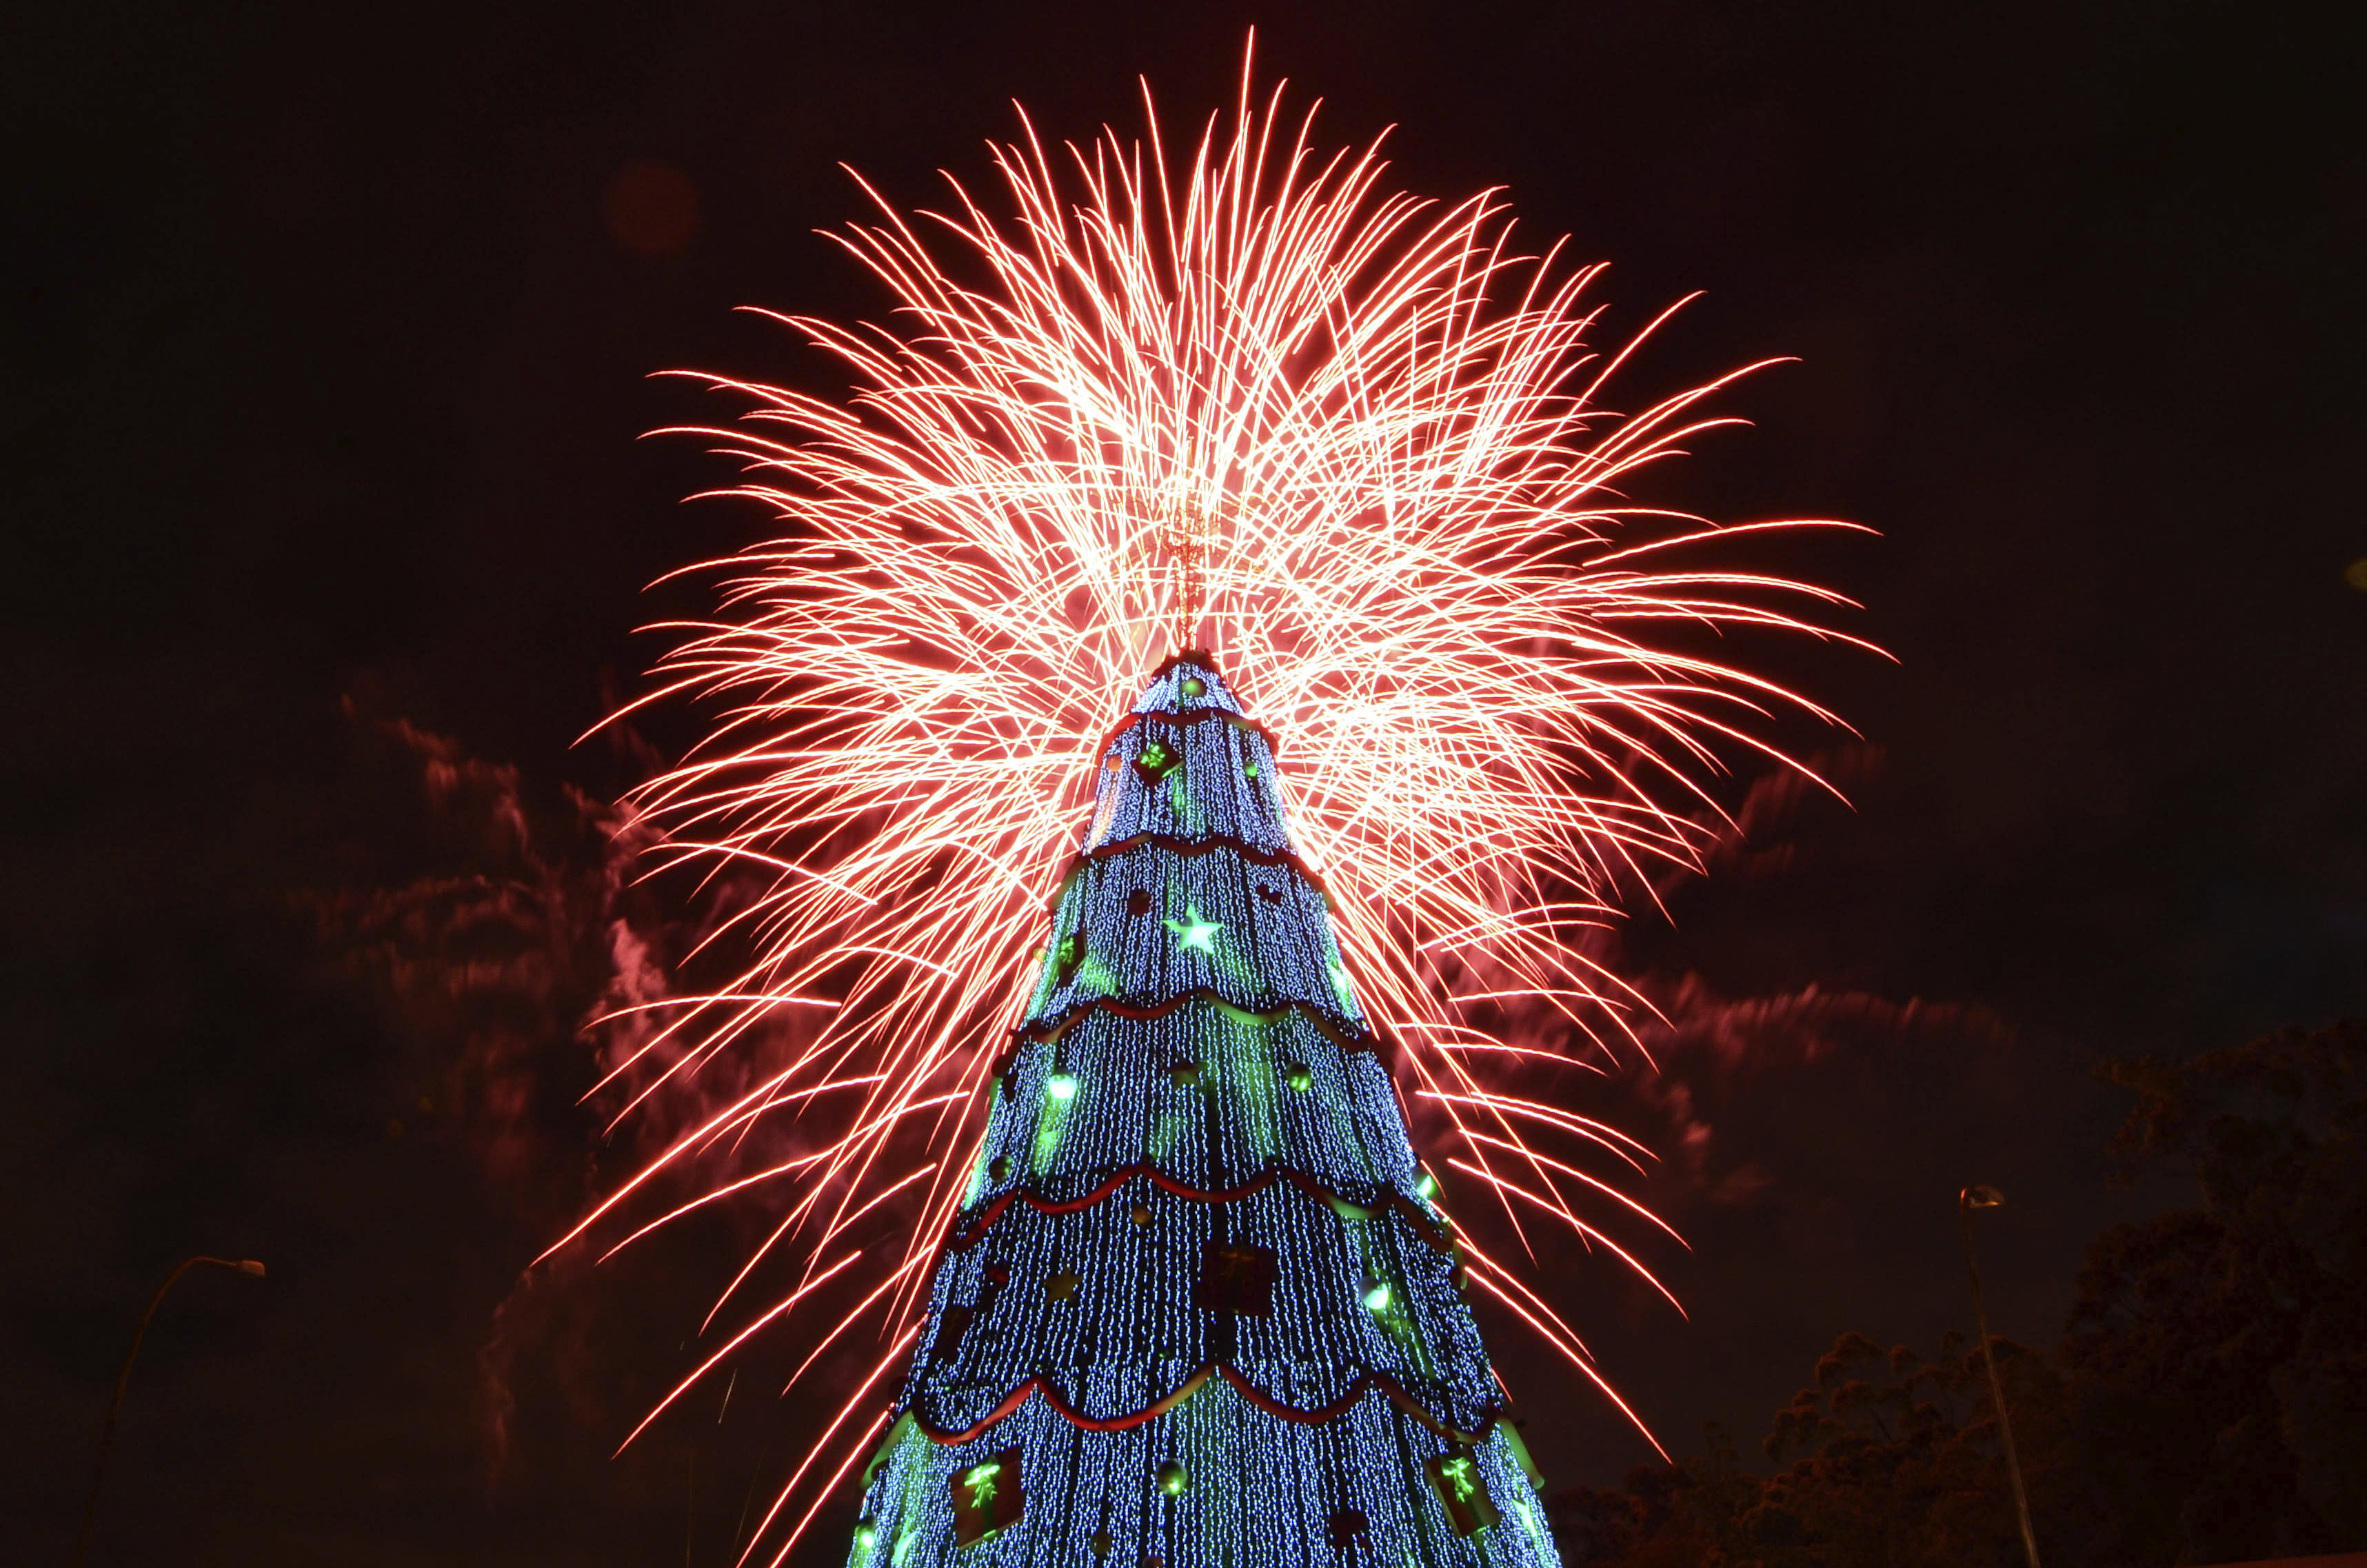 """Show of fireworks at the opening of the large traditional Christmas tree in the city of S""""o Paulo. The structure is almost 60 feet tall and has more than 500 lamps and 264 000 stroble micro-LED lamps on December 9, 2012 in Sao Paulo, Brazil. (Photo by Levi Bianco/News Free/LatinContent/Getty Images)"""